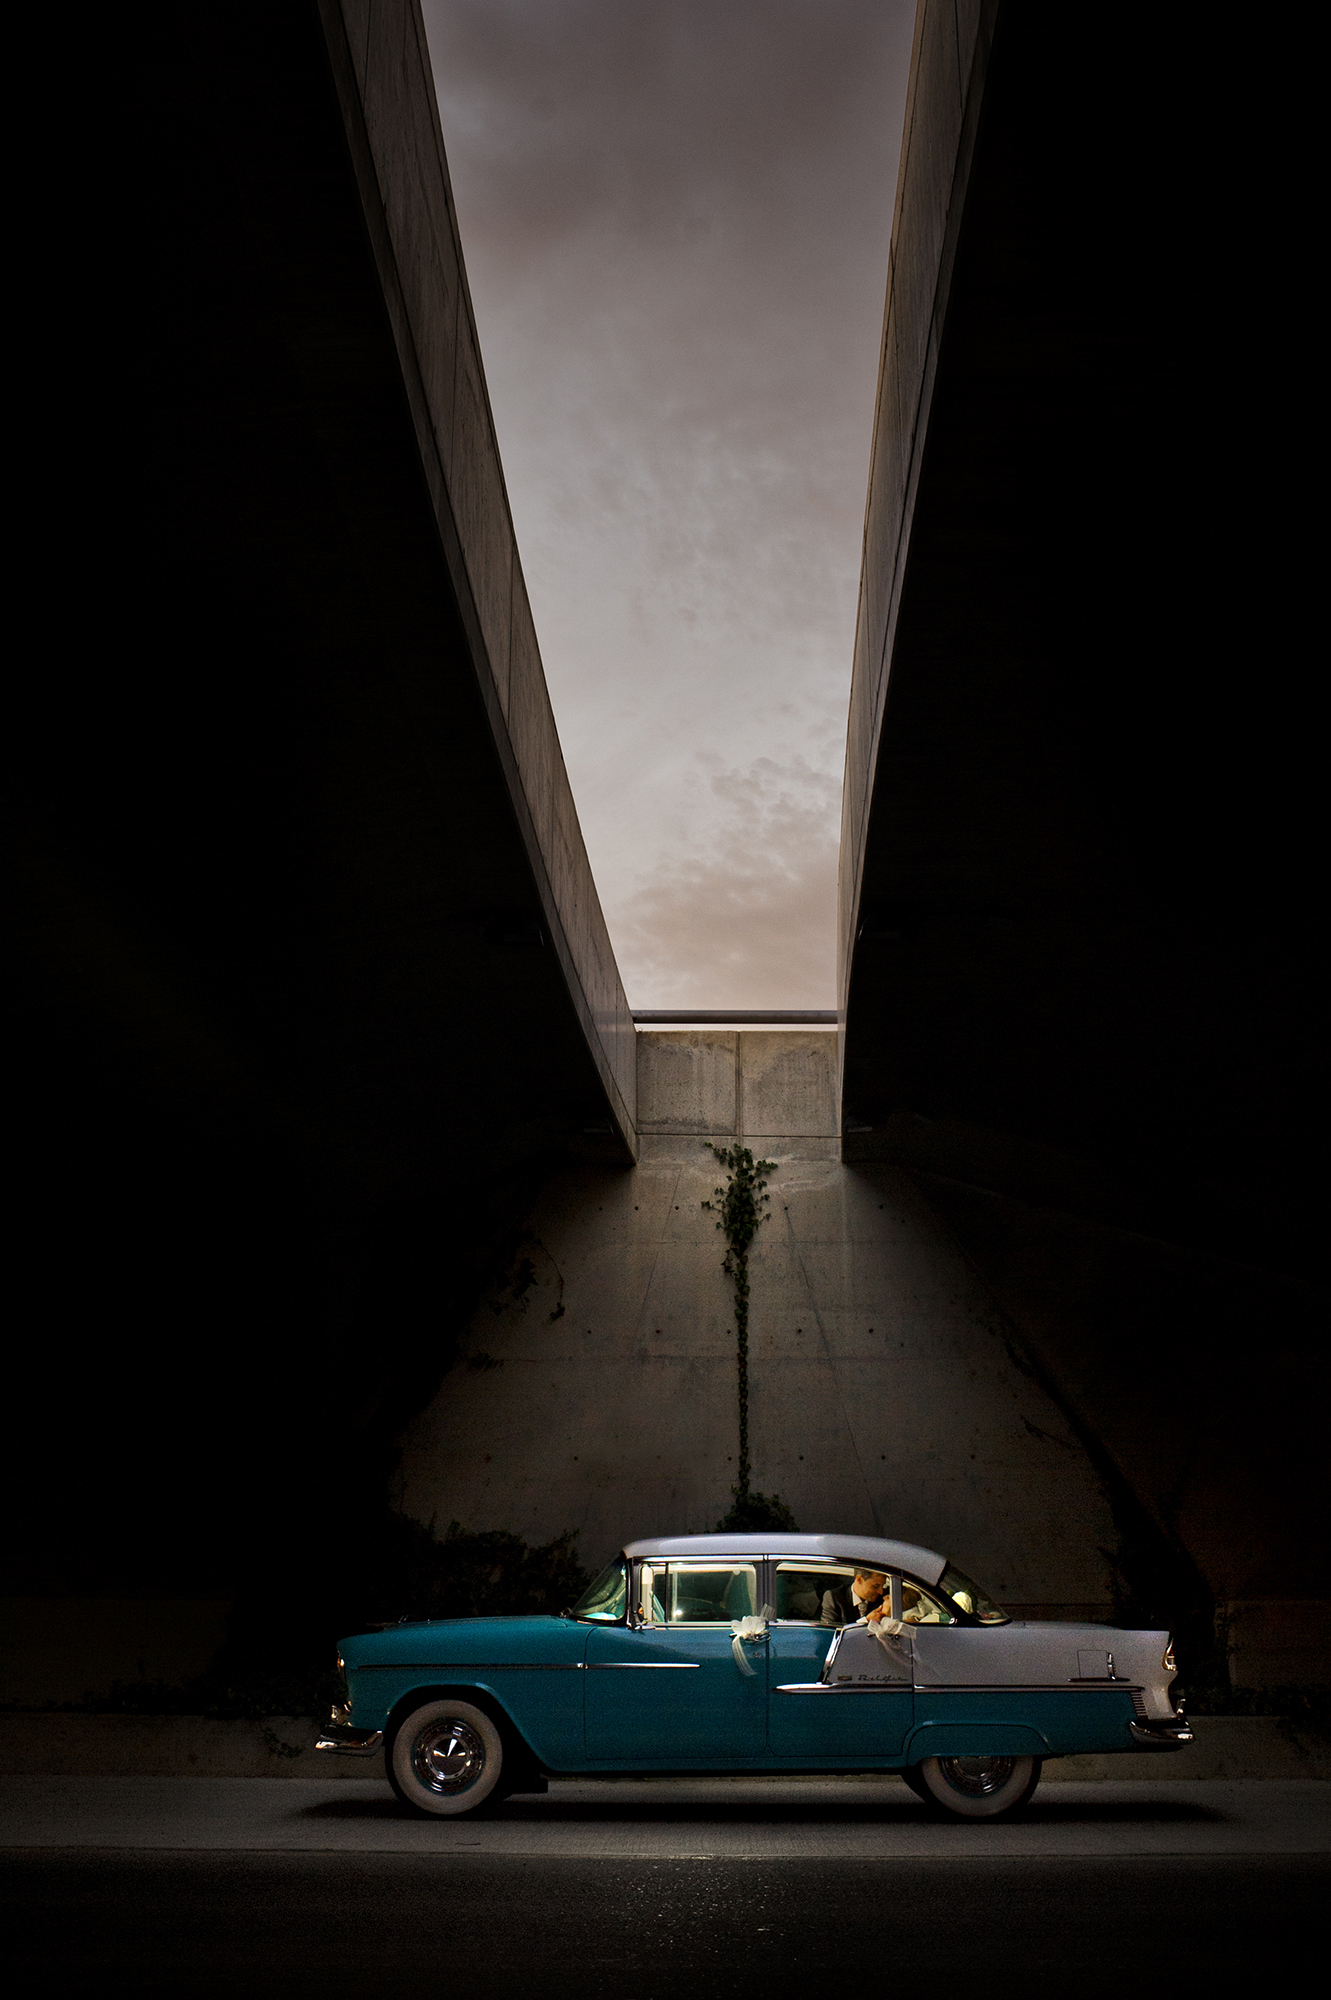 Couple in limo under skylight - photo by Victor Lax